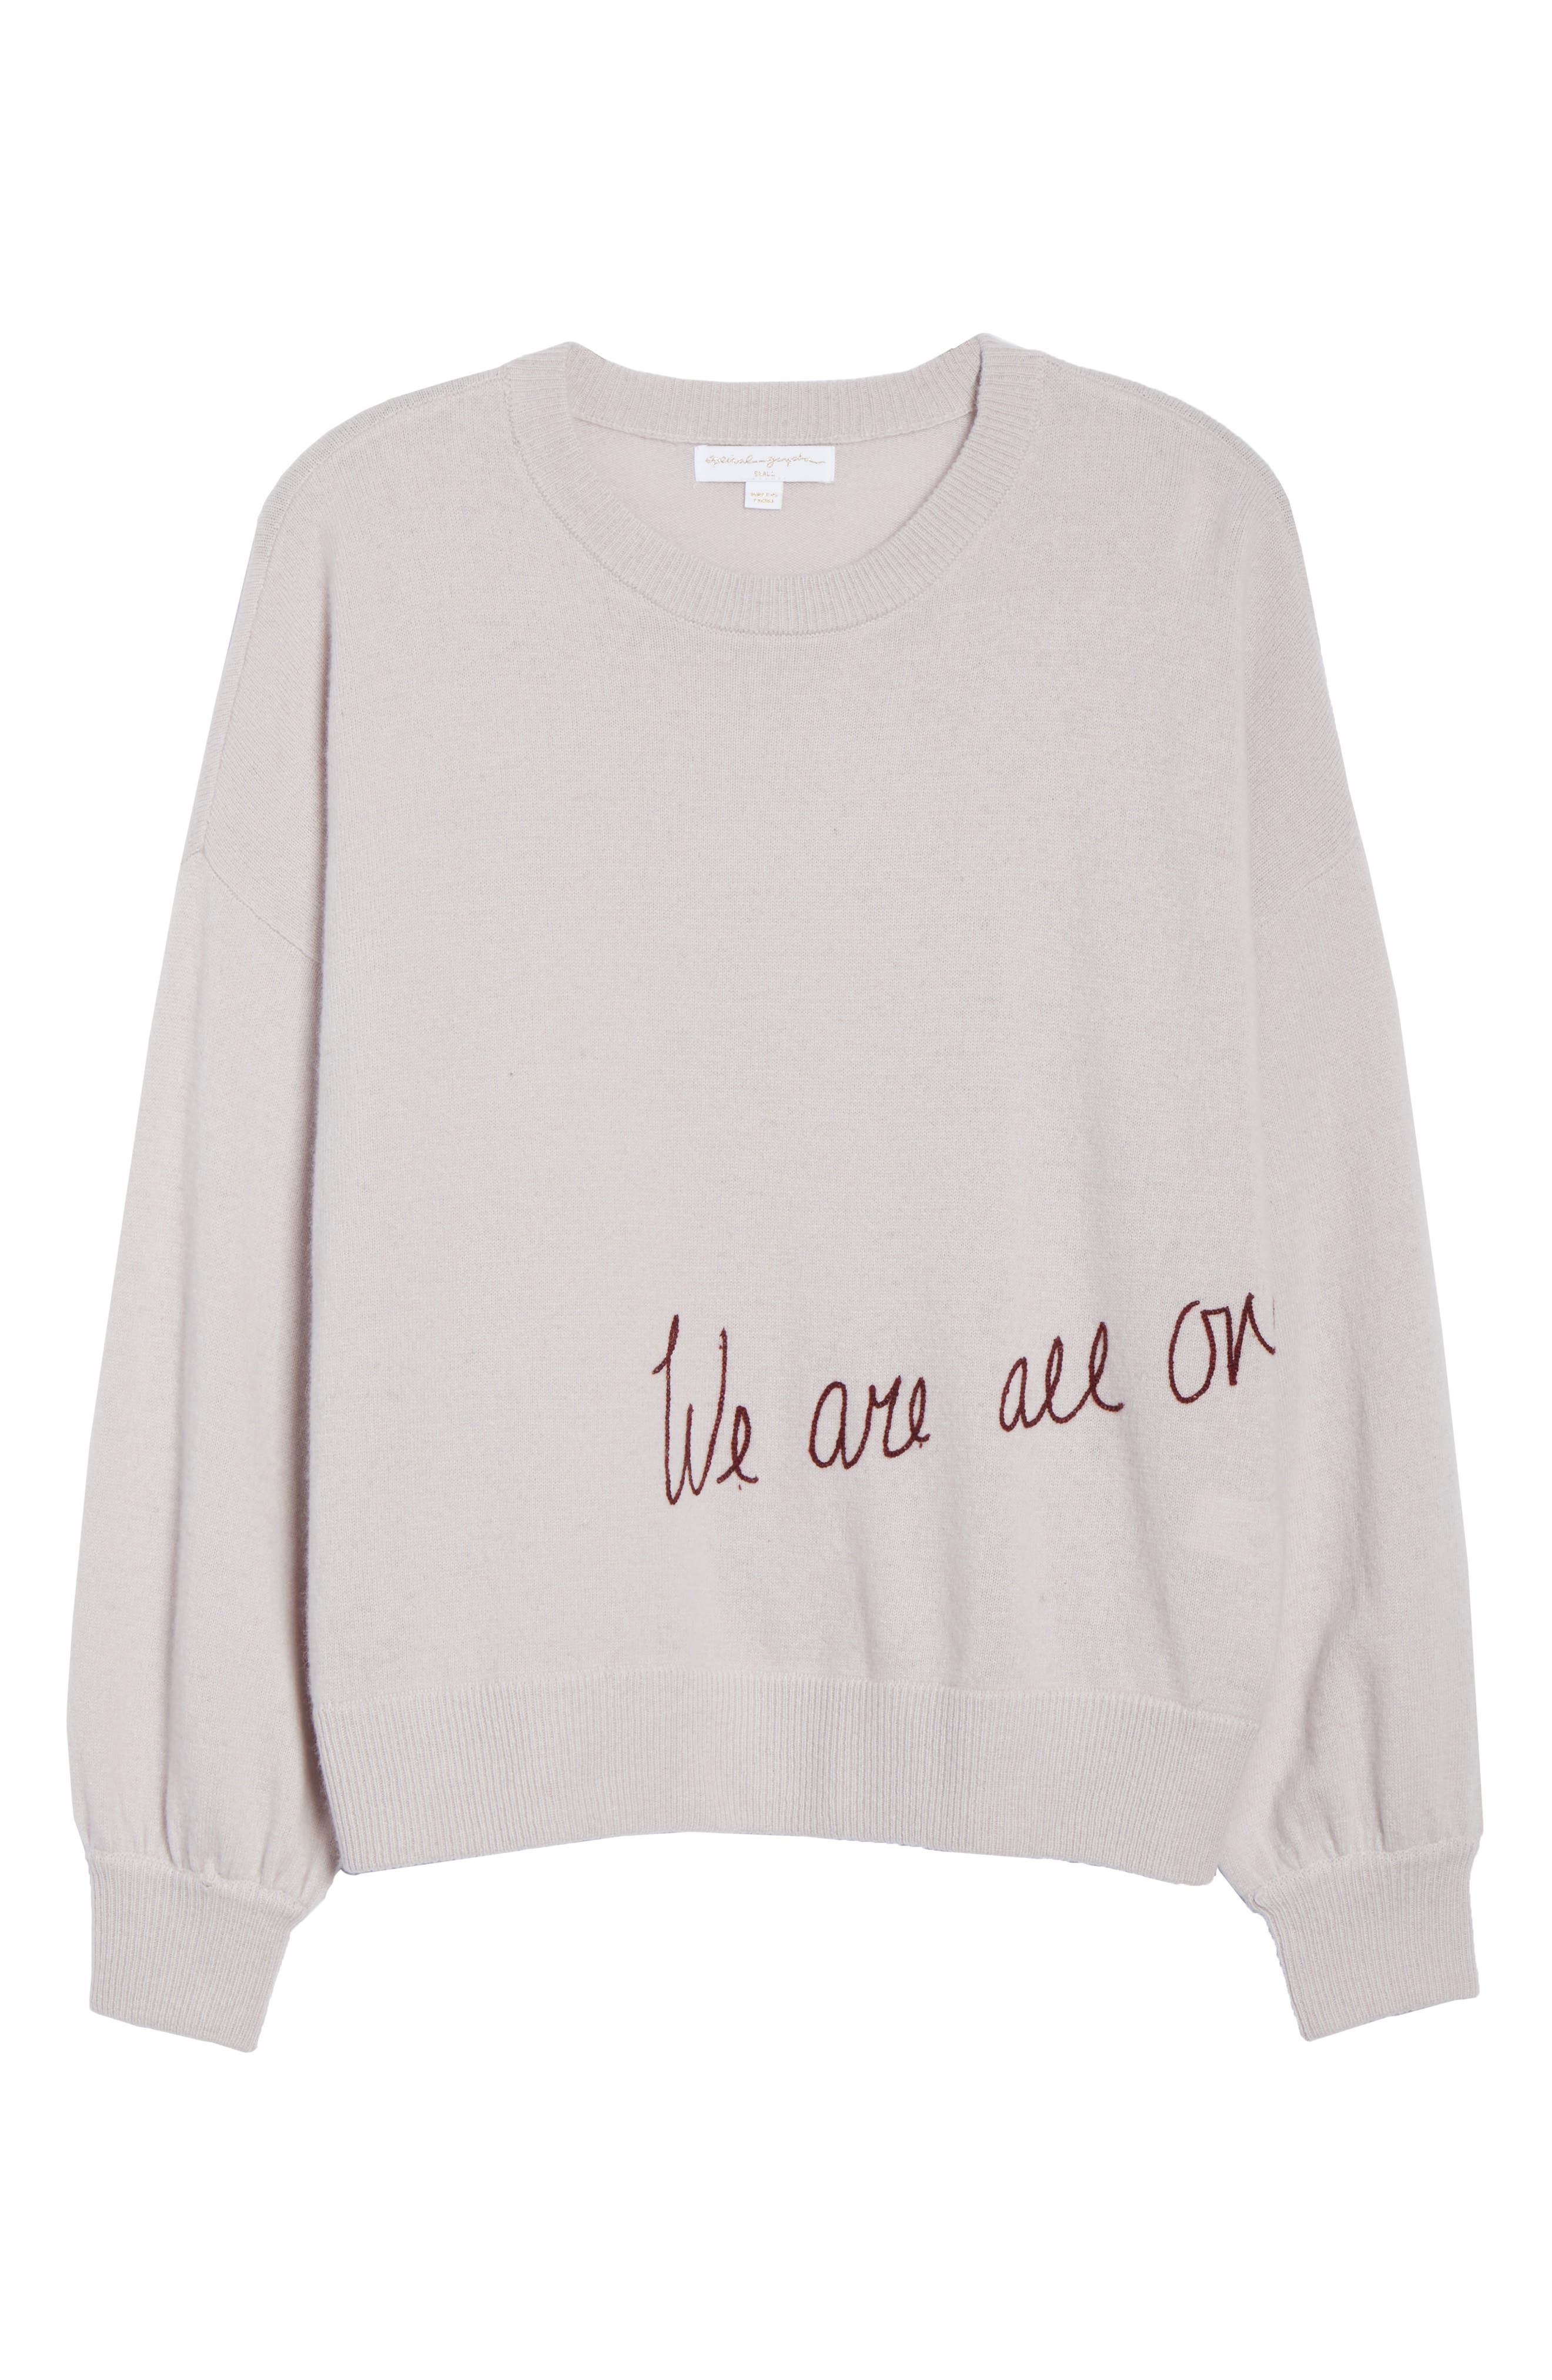 We Are All One Sweater,                             Alternate thumbnail 7, color,                             650